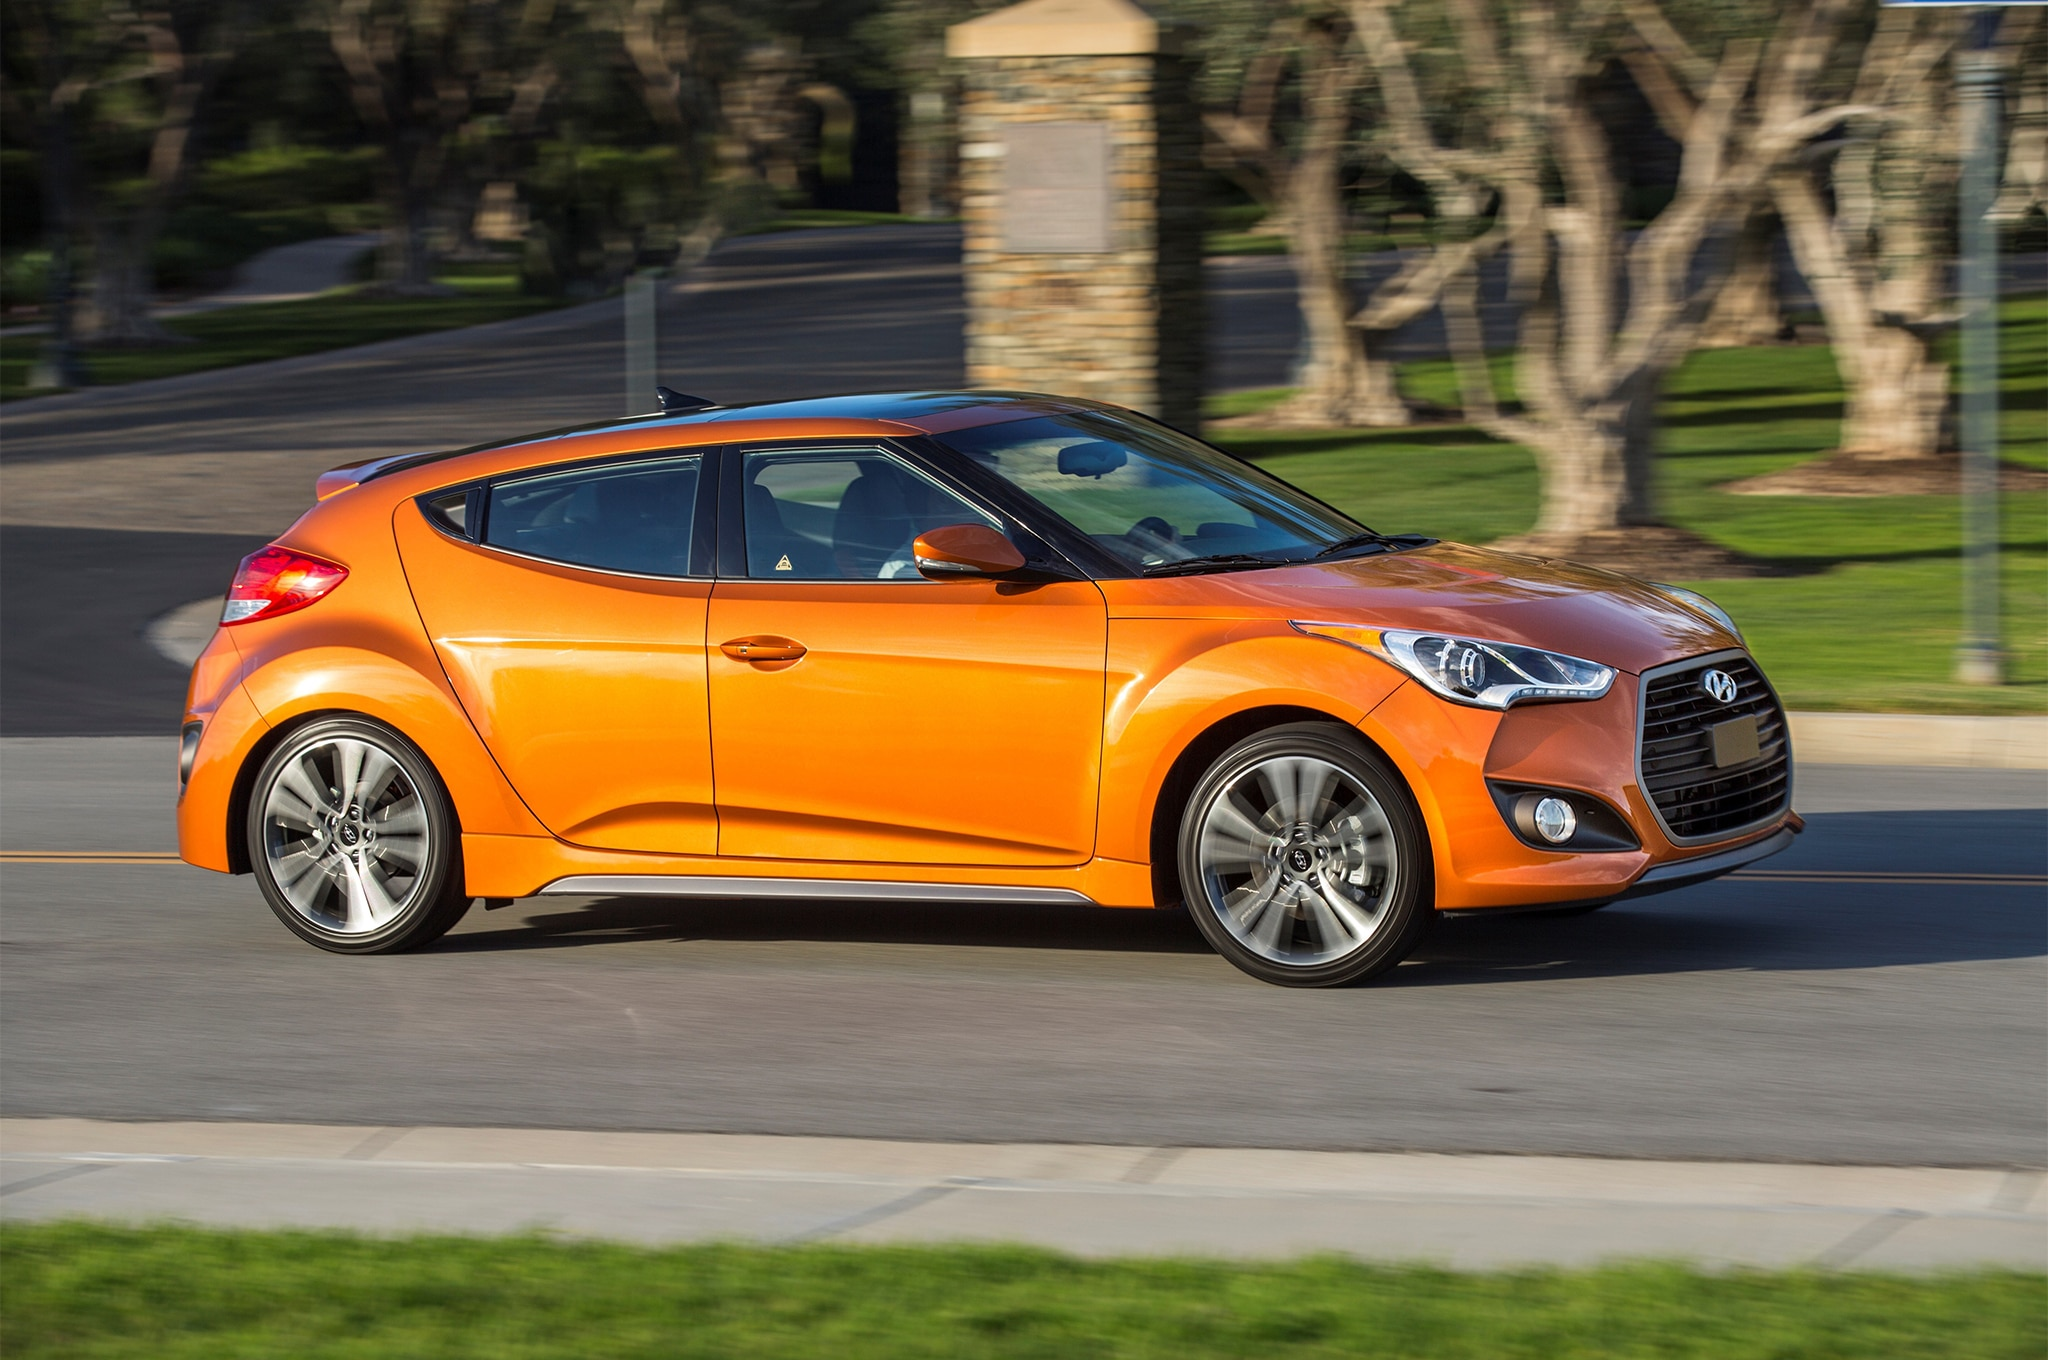 hyundai veloster radio wiring diagram best wiring library 2012 Hyundai Veloster 4 Door Wiring Diagram For 2012 Hyundai Veloster #7